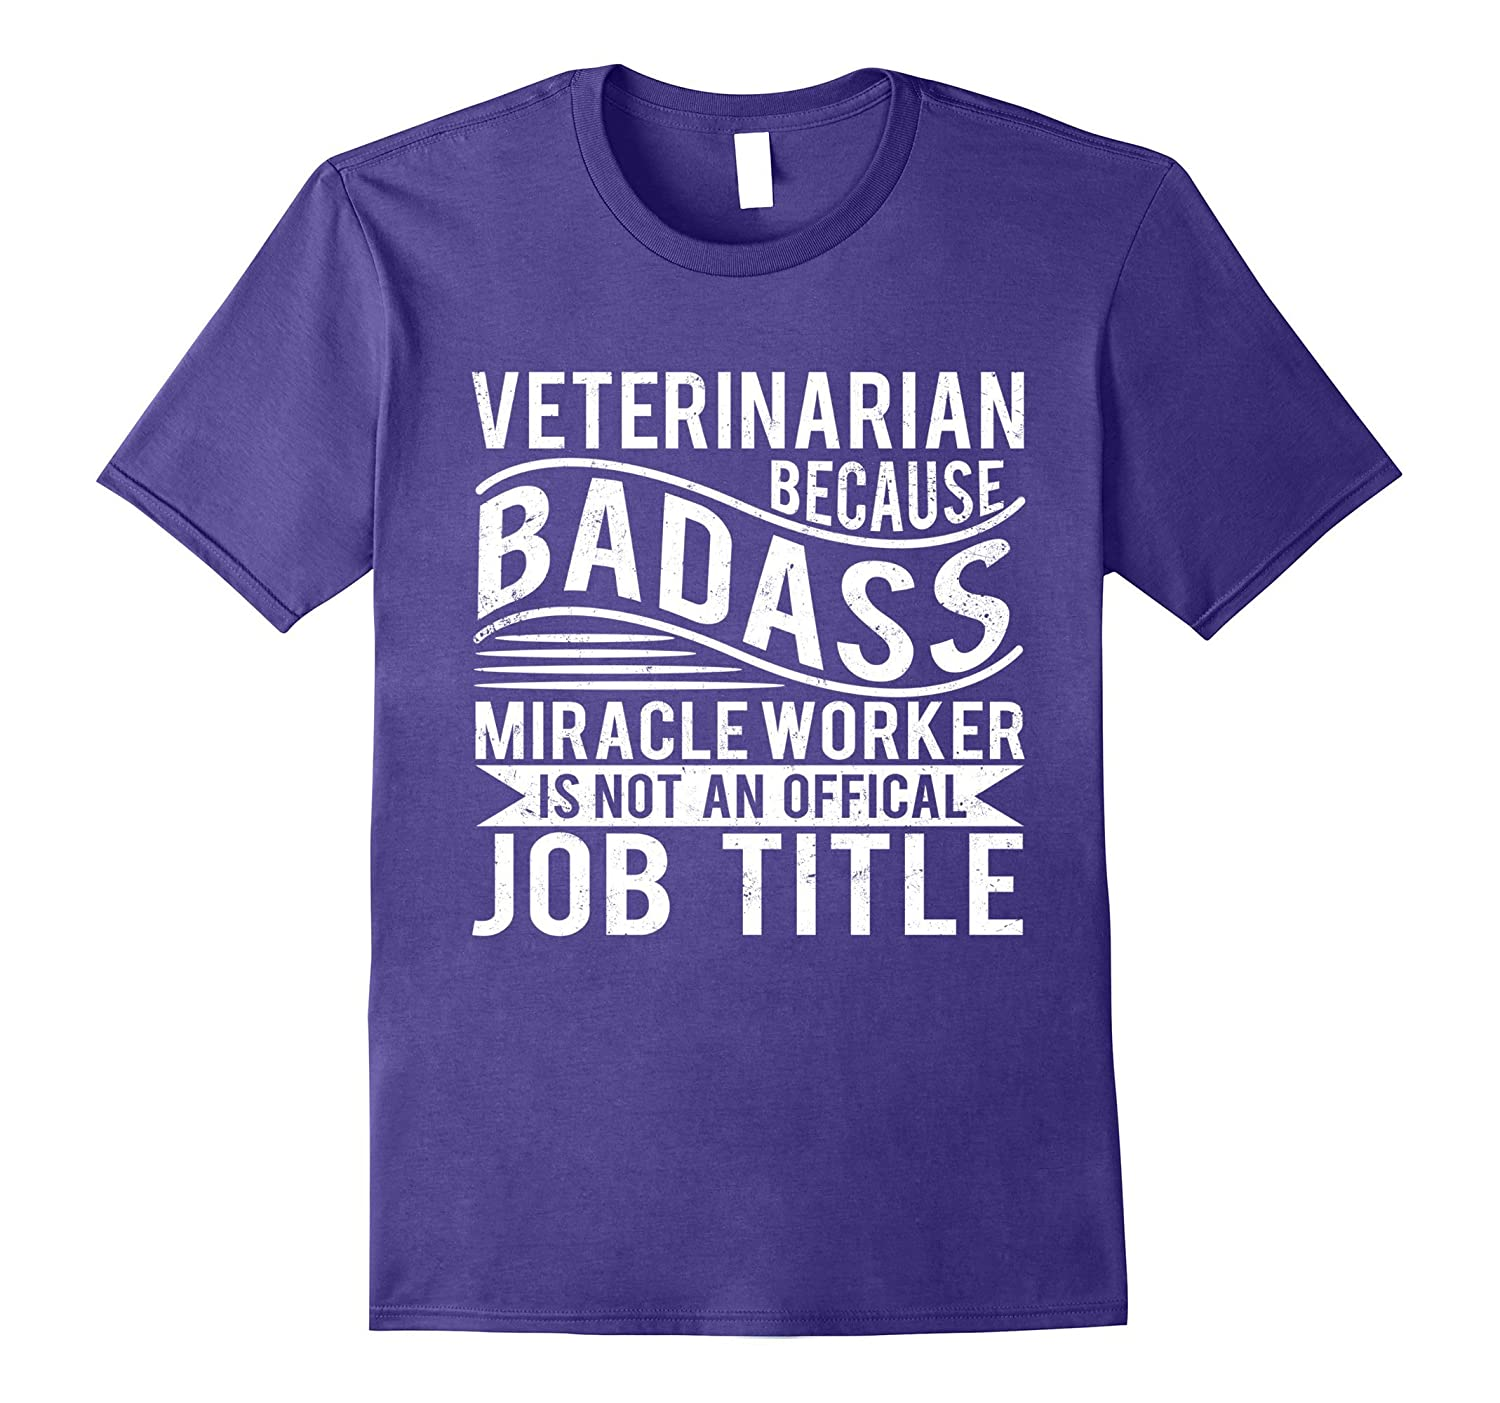 Veterinarian Because Badass Miracle Worker T-shirt-TJ